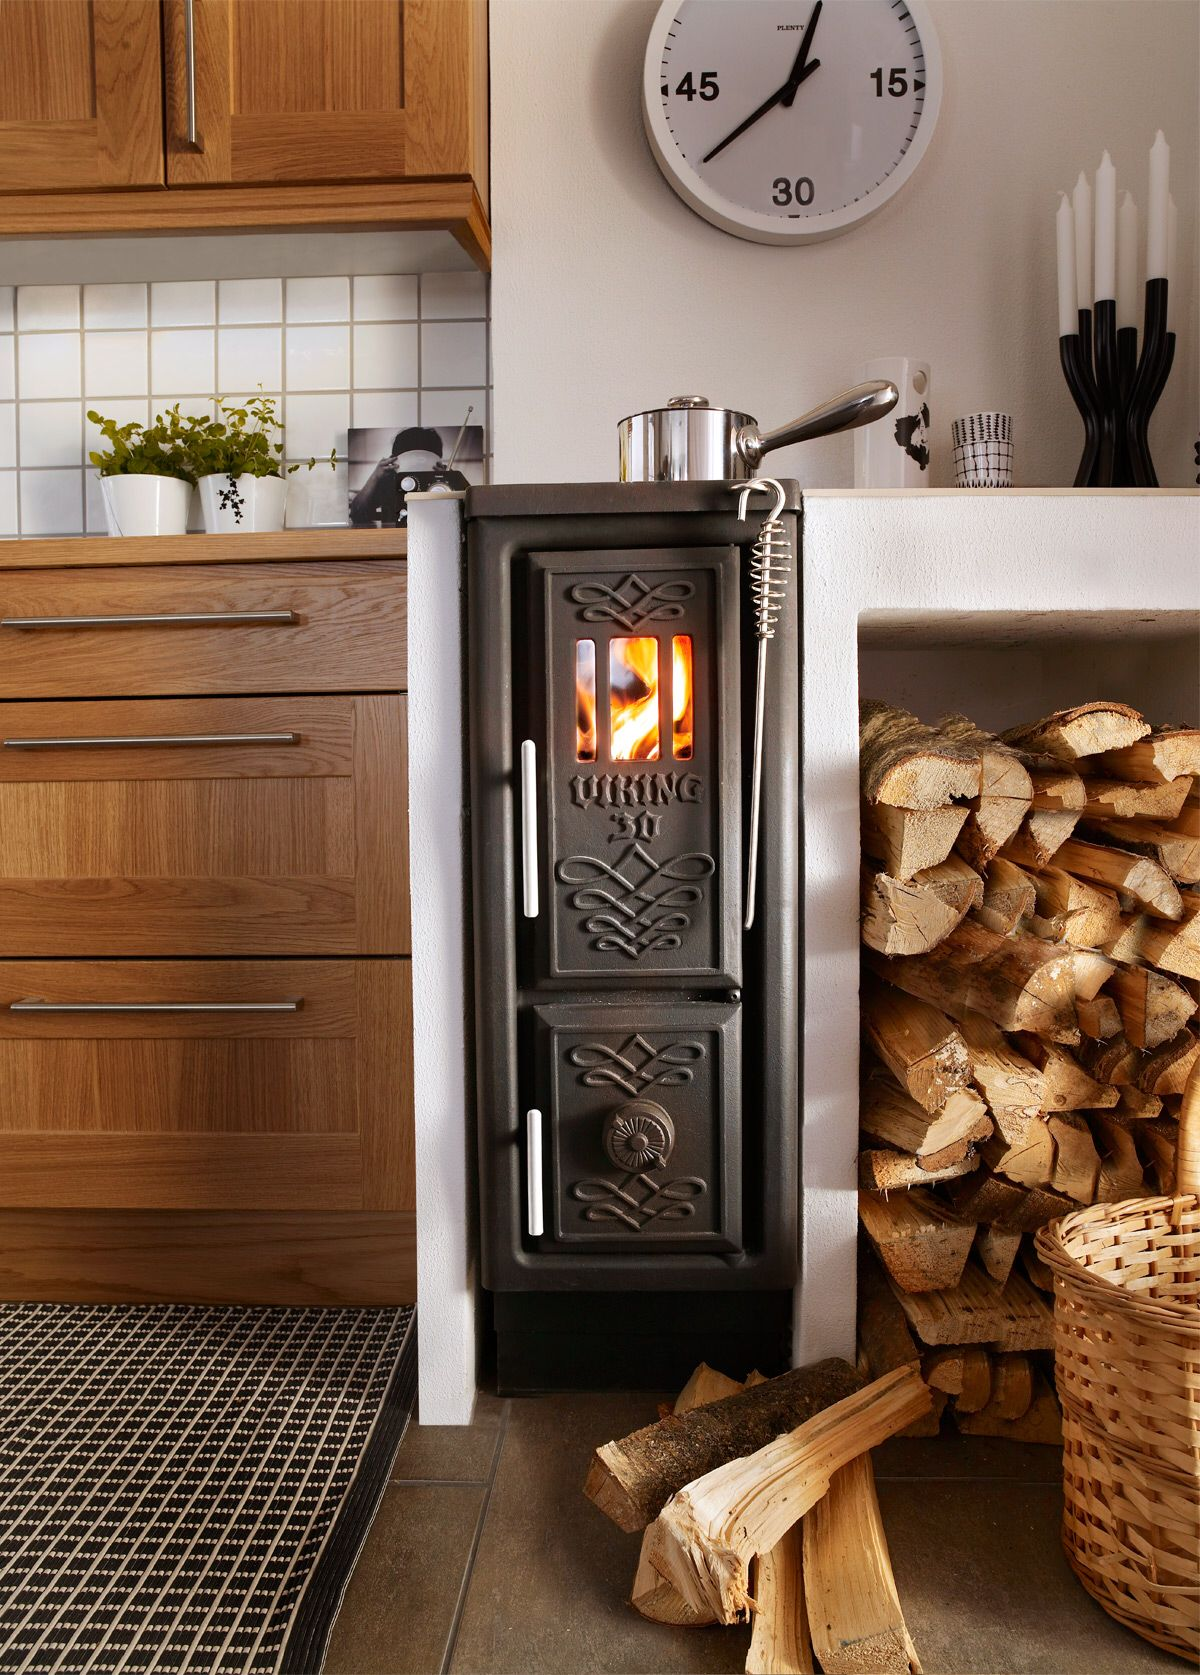 multi from cast stays turboblaze clean fuel a iron the pin stoves fireplace using salamander wood burning technology efficient hobbit stove small glass is and